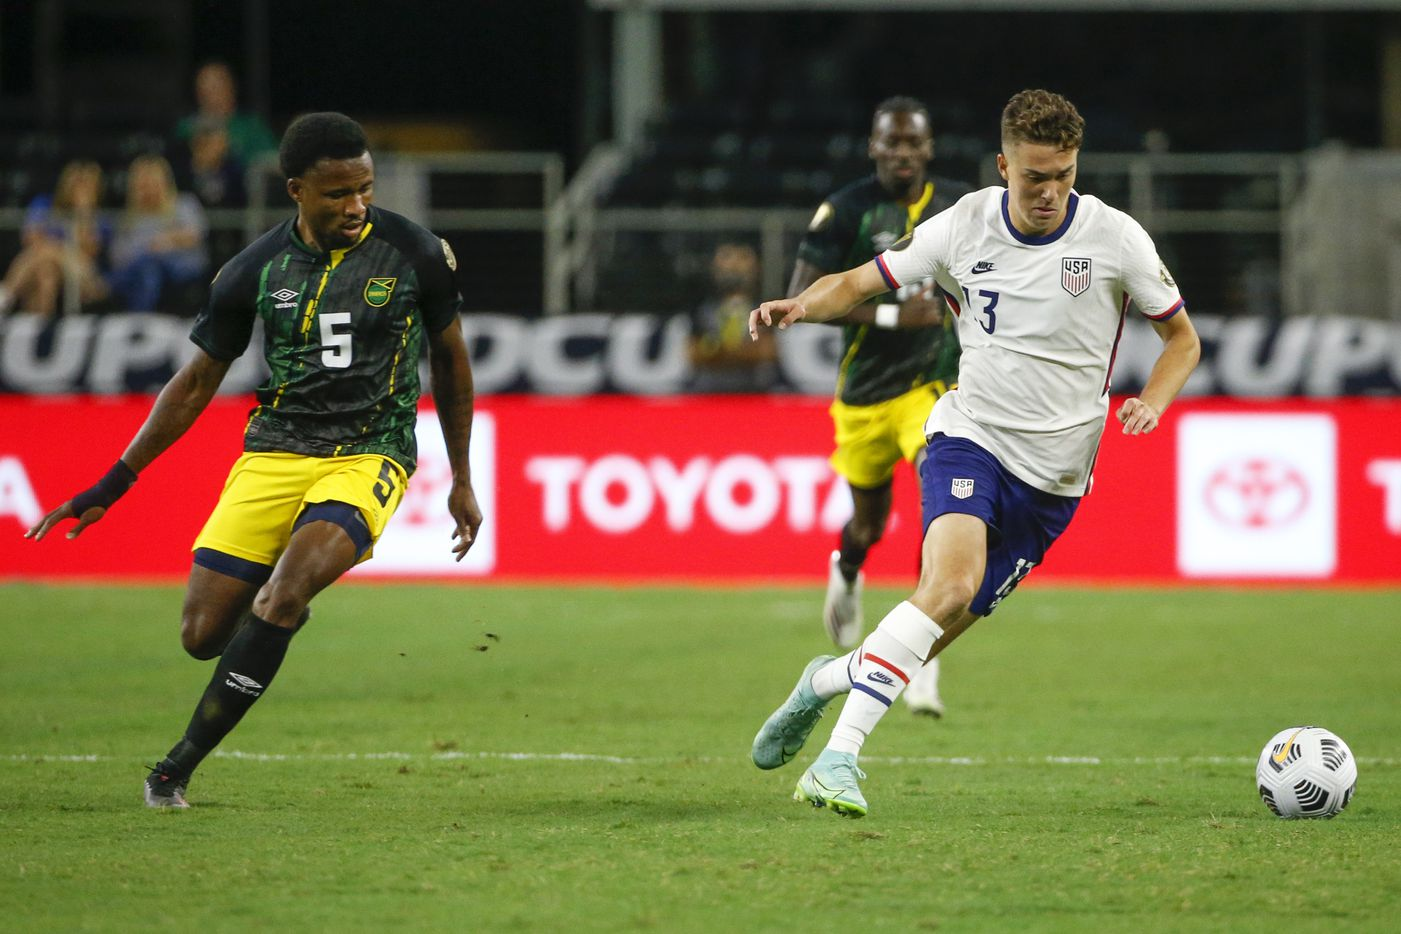 USA forward Matthew Hoppe (13) dribbles away from Jamaica defender Alvas Powell (5) during the first half of a CONCACAF Gold Cup quarterfinal soccer match at AT&T Stadium on Sunday, July 25, 2021, in Arlington. (Elias Valverde II/The Dallas Morning News)